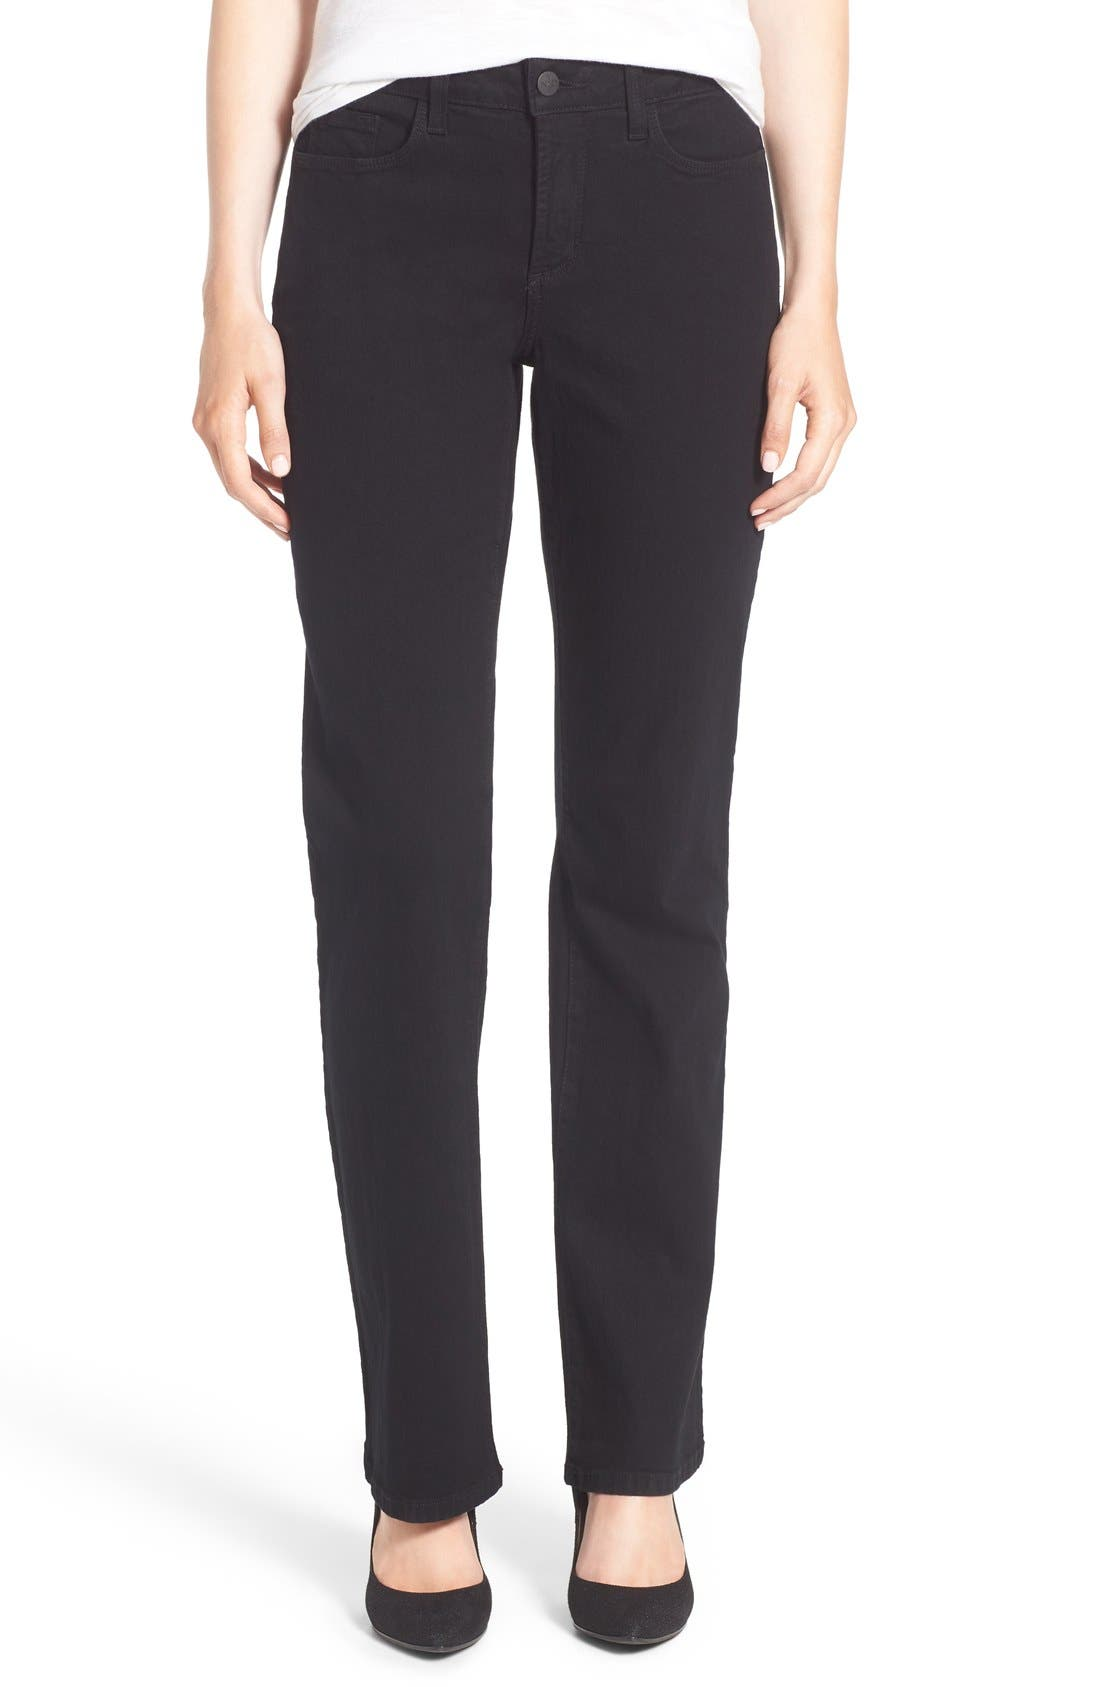 Alternate Image 1 Selected - NYDJ Barbara Stretch Bootcut Jeans (Regular & Petite)